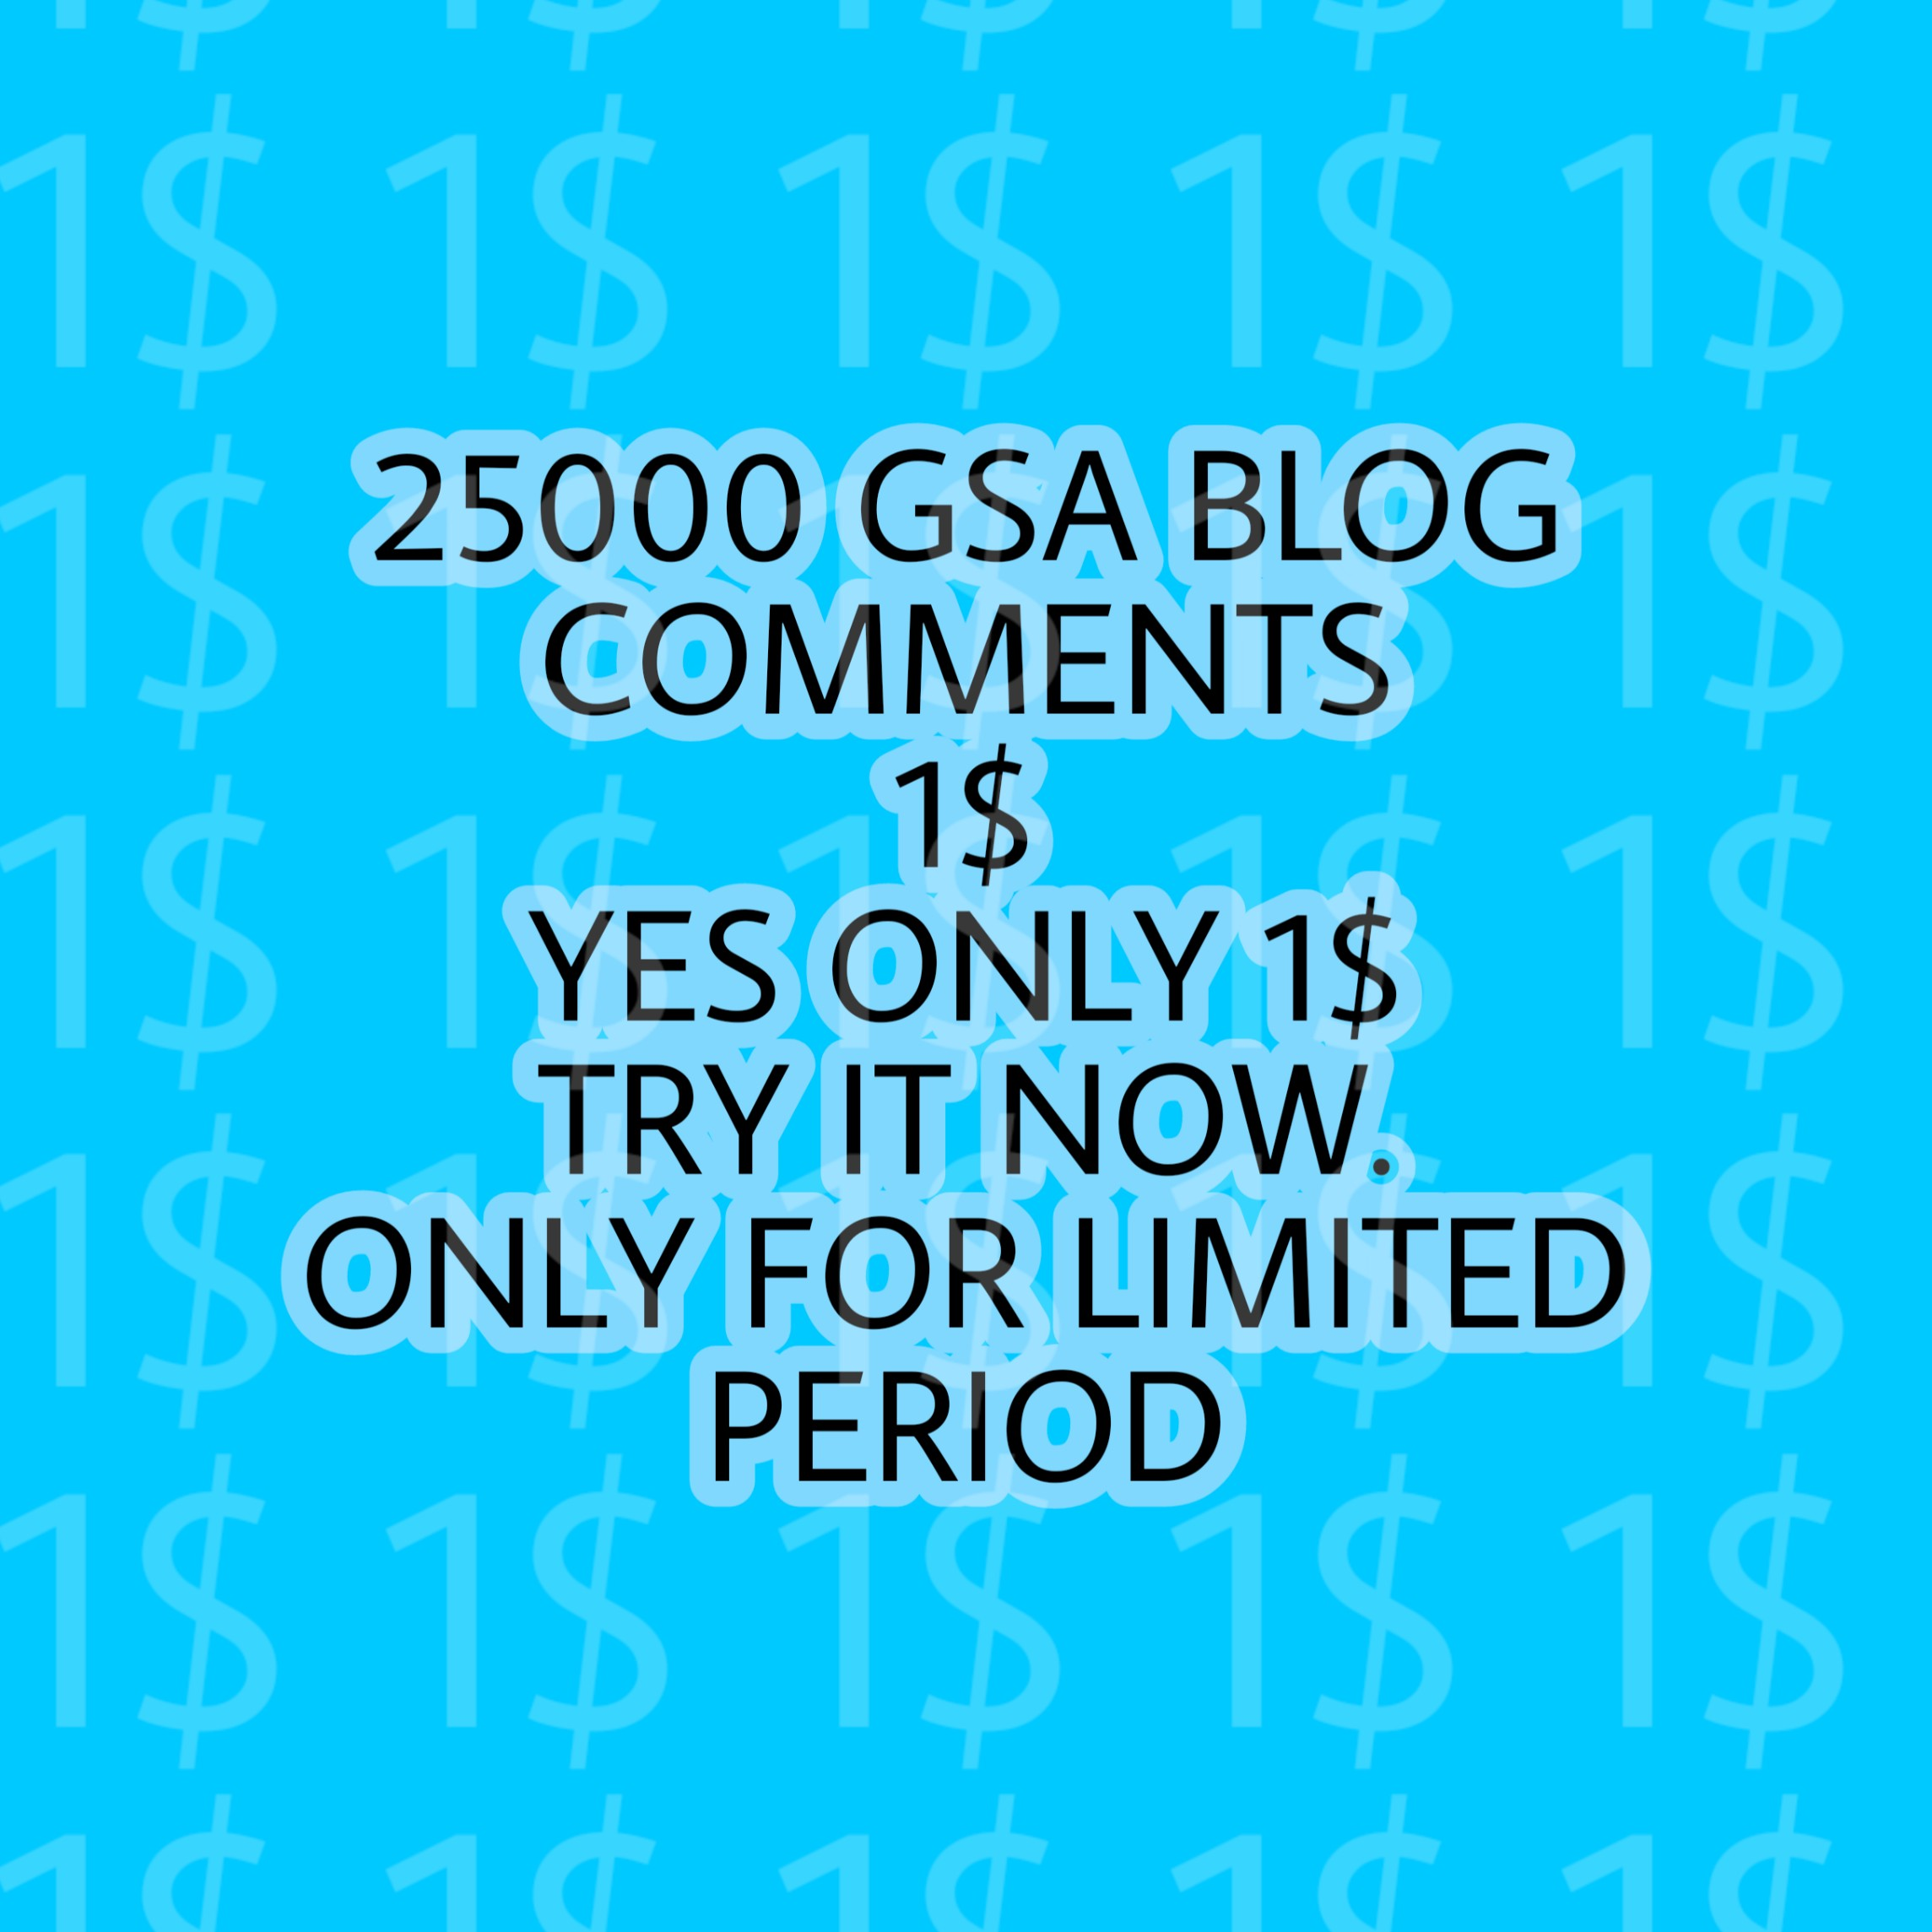 I will build 25000 GSA BLOG comments for Google seo increase rankings